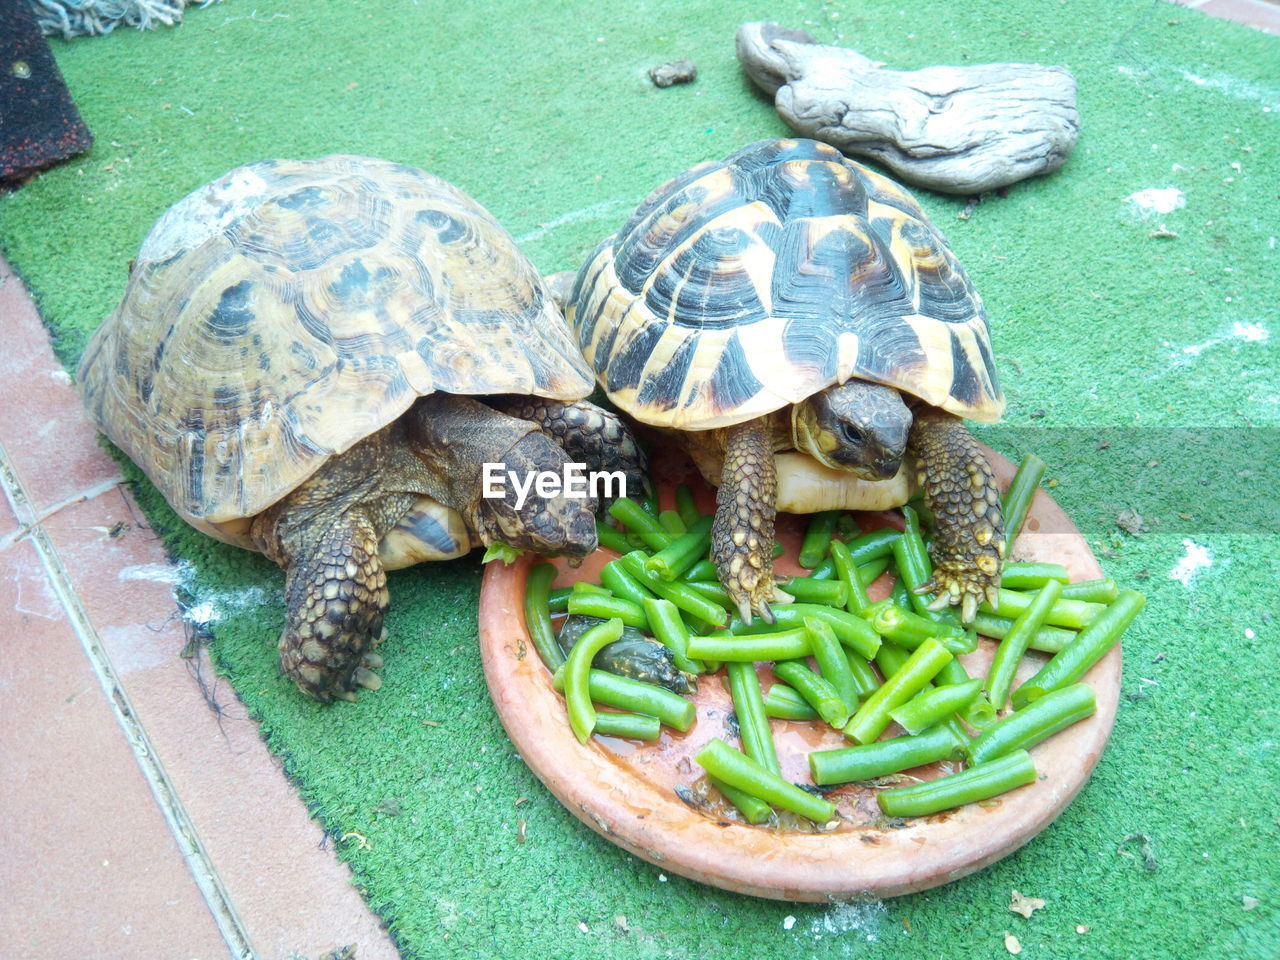 turtle, reptile, tortoise, animal themes, animal wildlife, animal, vertebrate, animal shell, shell, animals in the wild, high angle view, no people, close-up, group of animals, day, tortoise shell, nature, outdoors, green color, marine